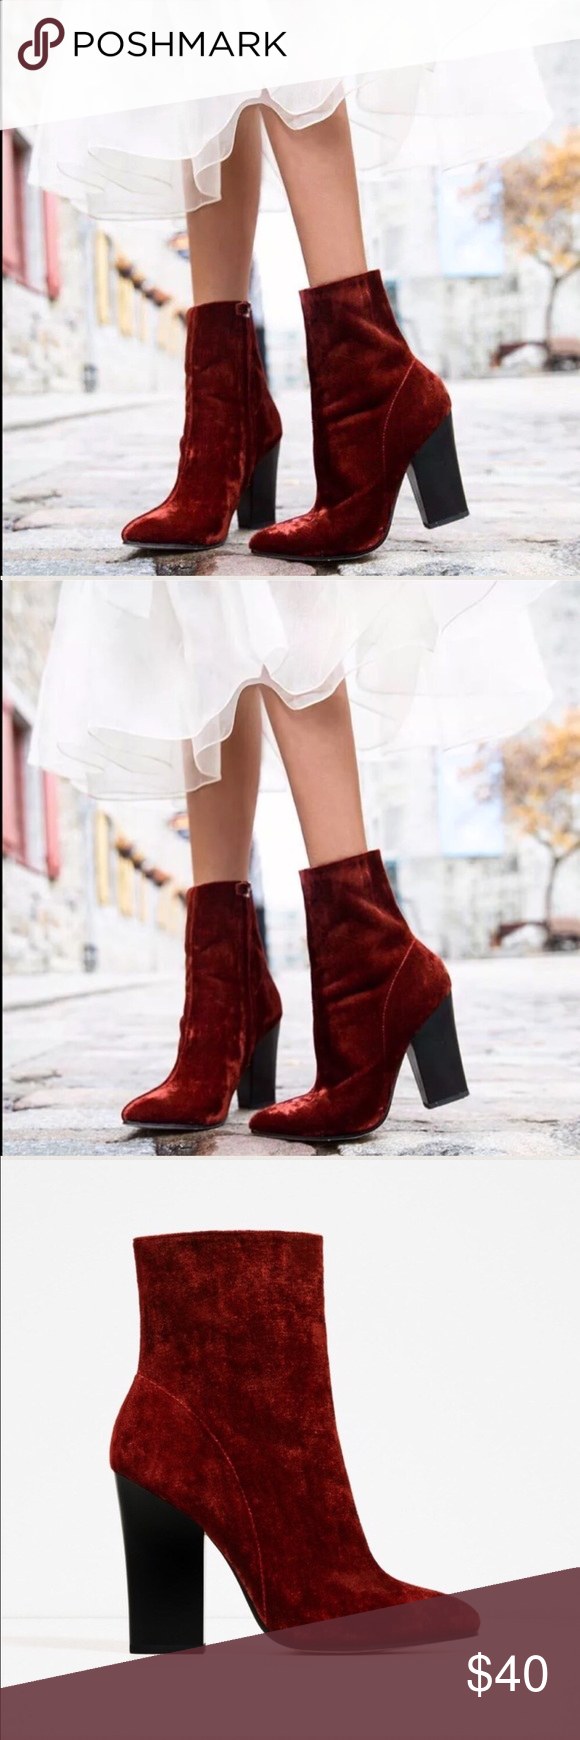 Zara red velvet boot Size 10 Zara Shoes